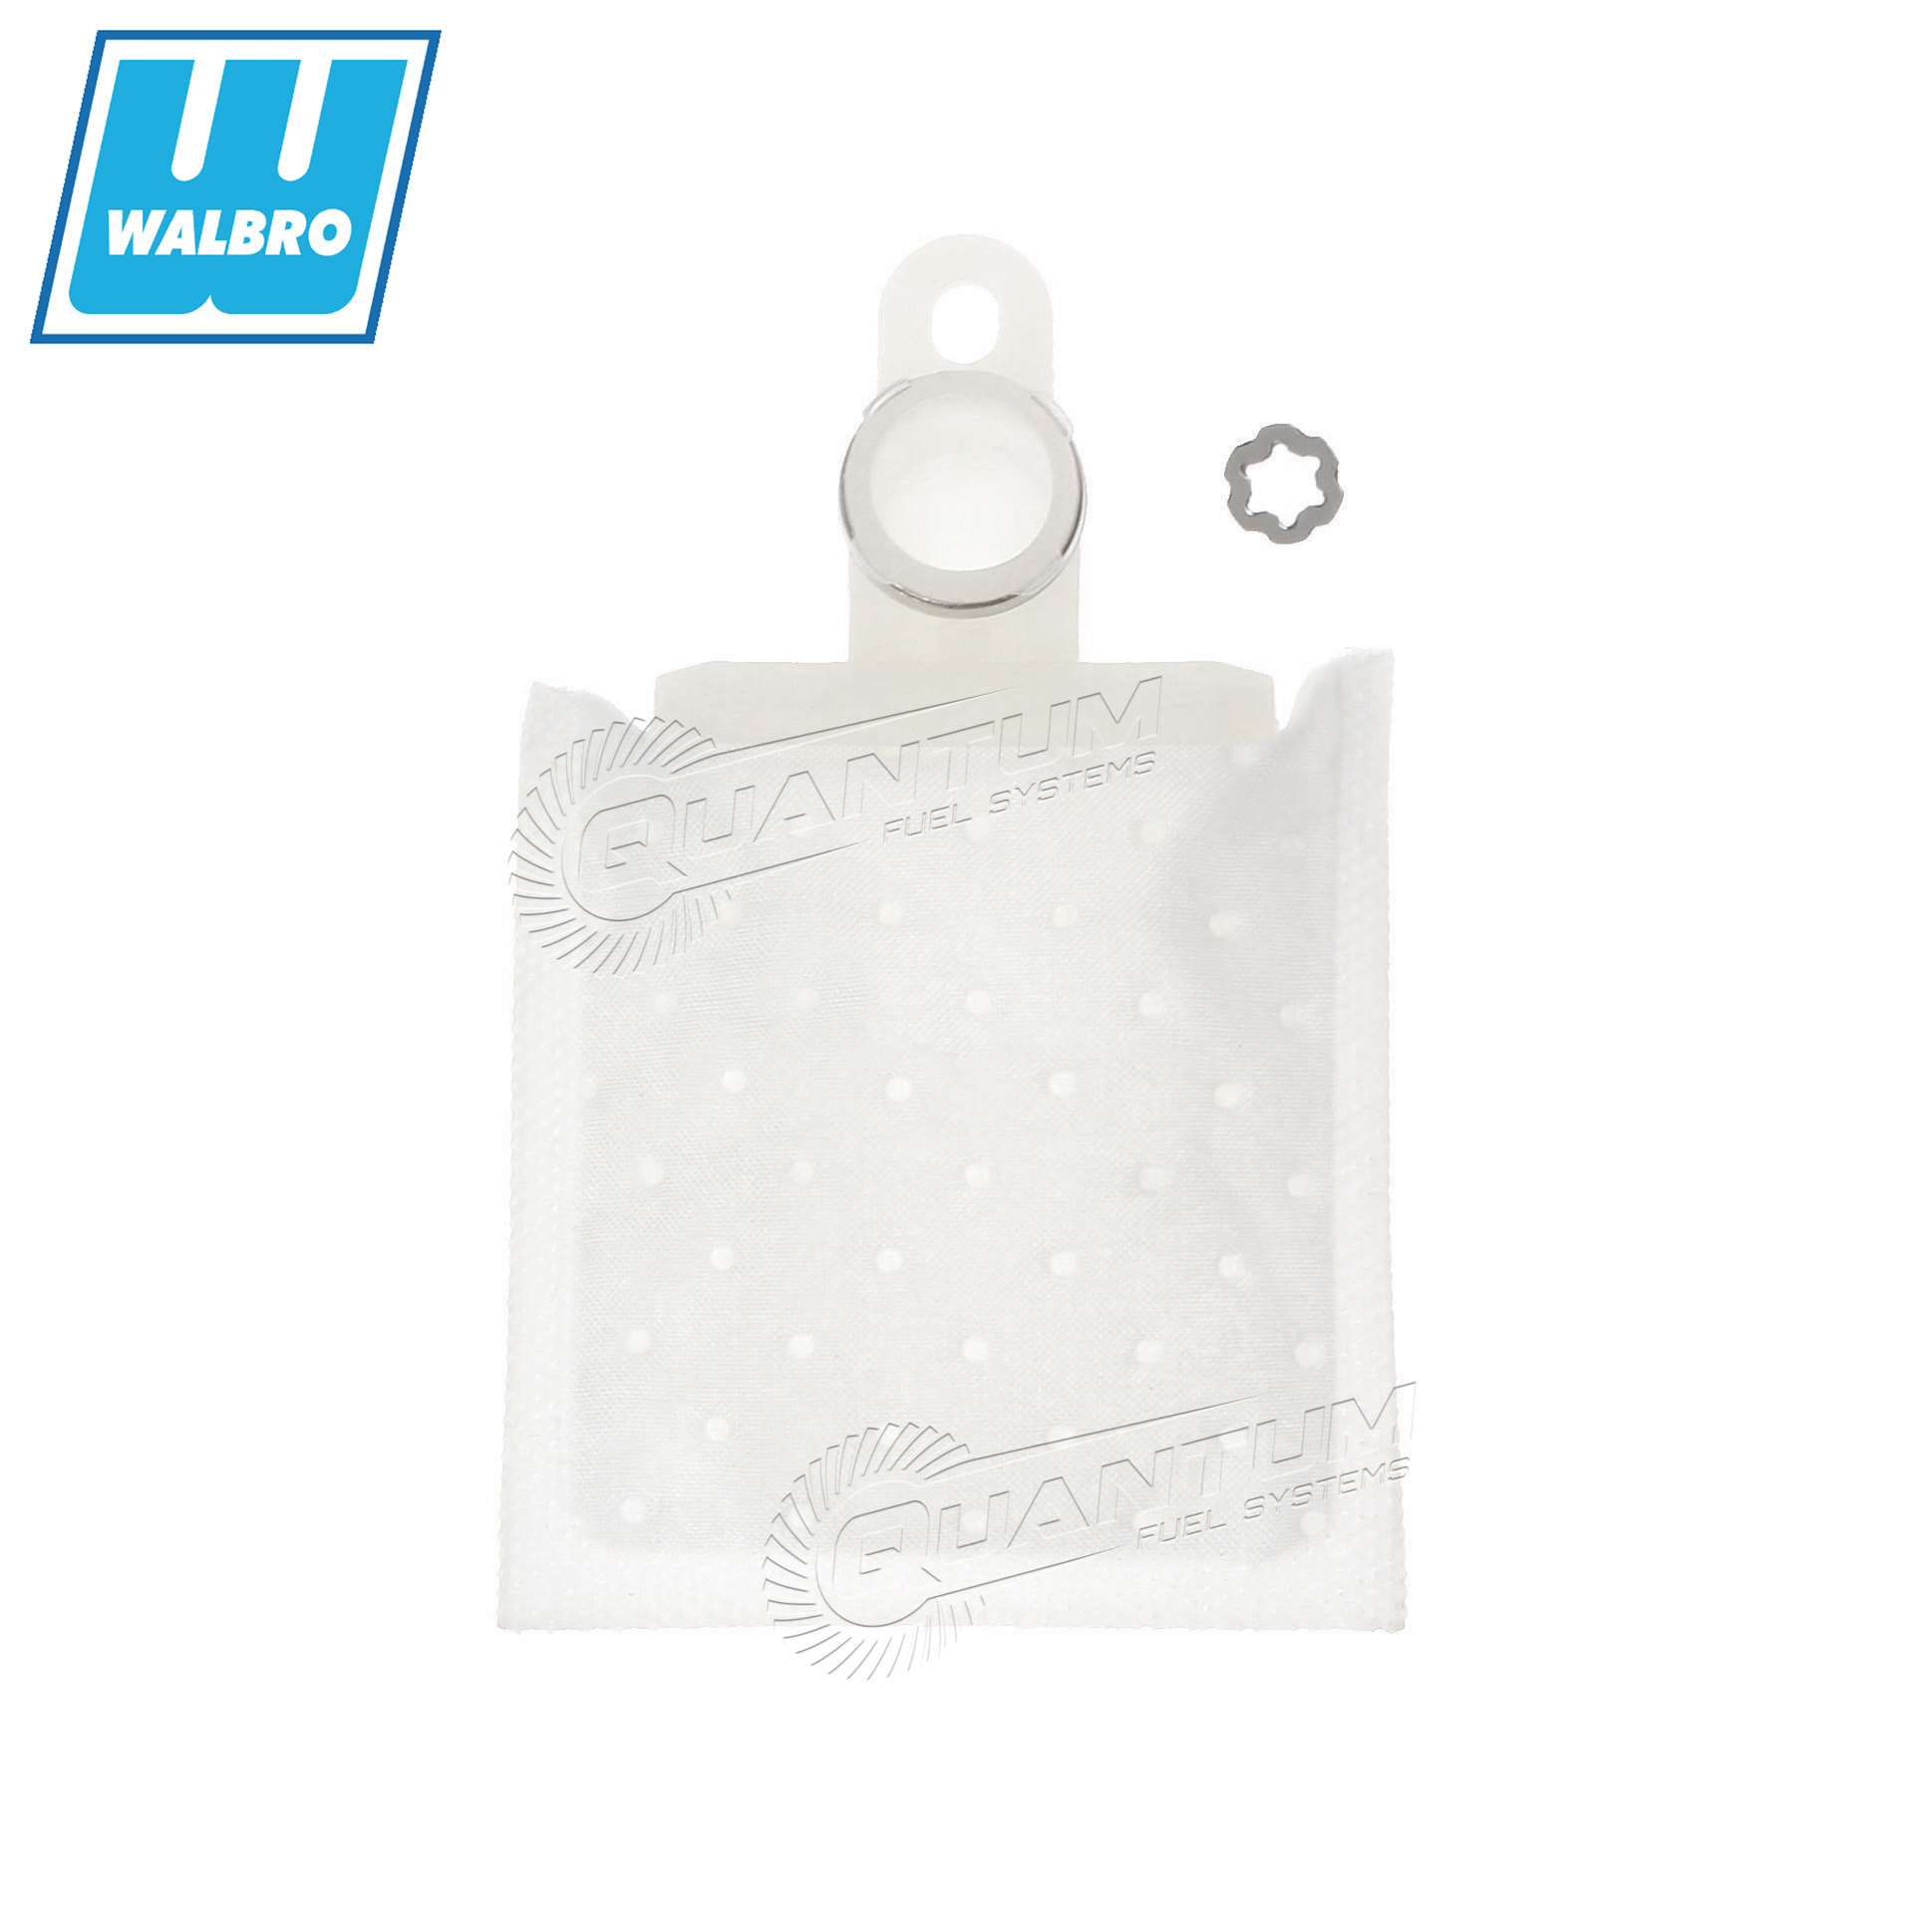 Fuel Strainer Replacement for Walbro GSS341 GSS342 11141 11142 FS225 125-147